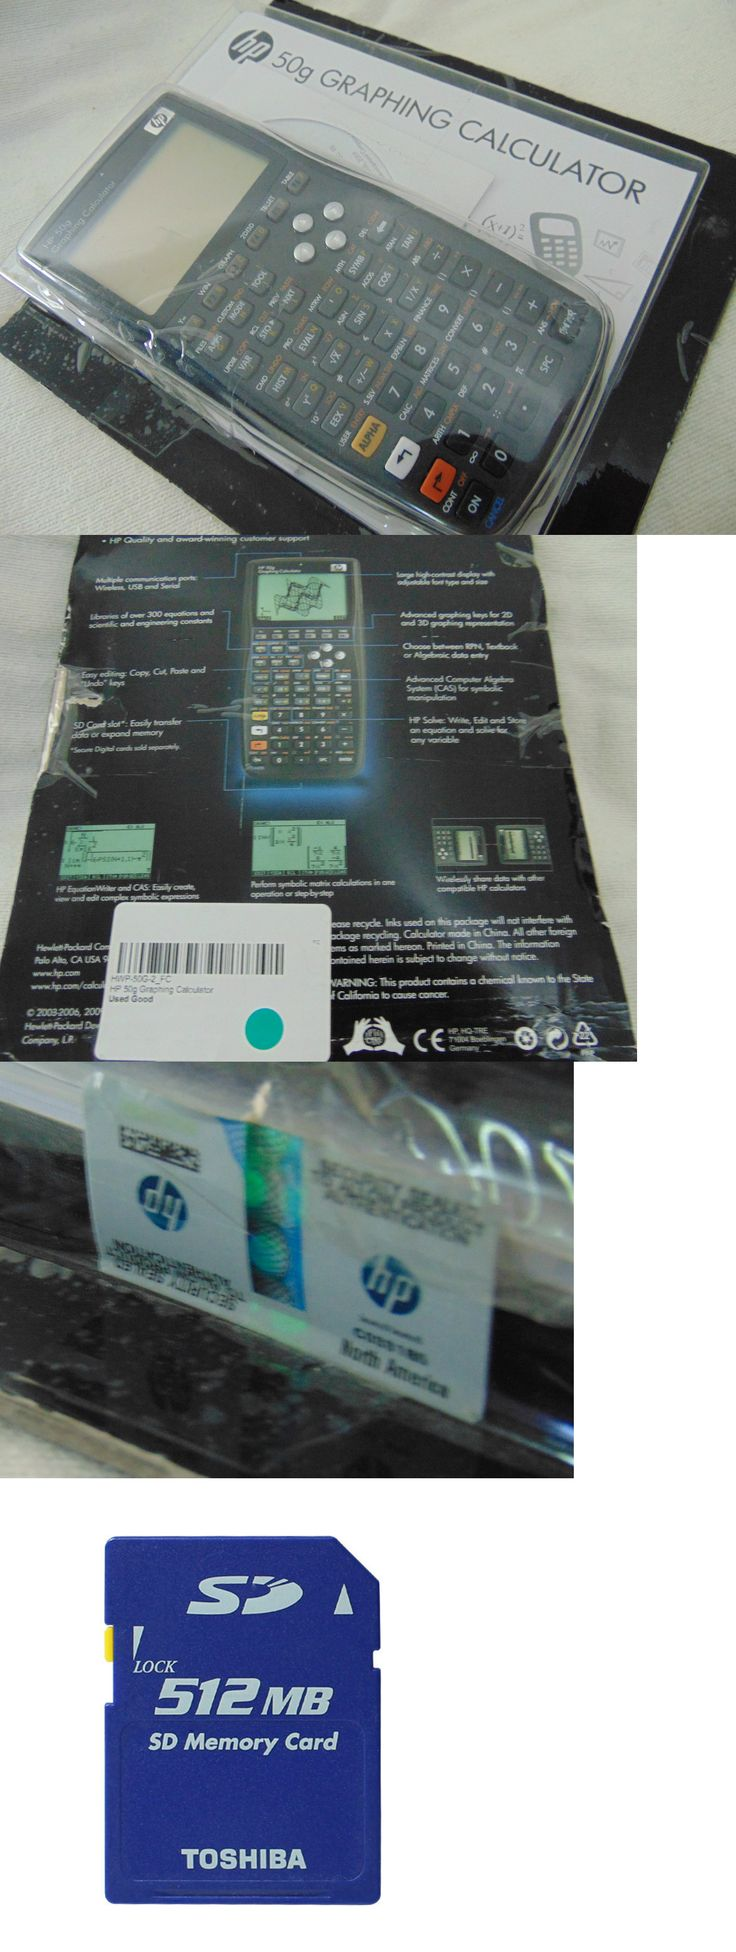 Calculators: Hewlett Packard Hp 50G Graphing Calculator -> BUY IT NOW ONLY: $259 on eBay!